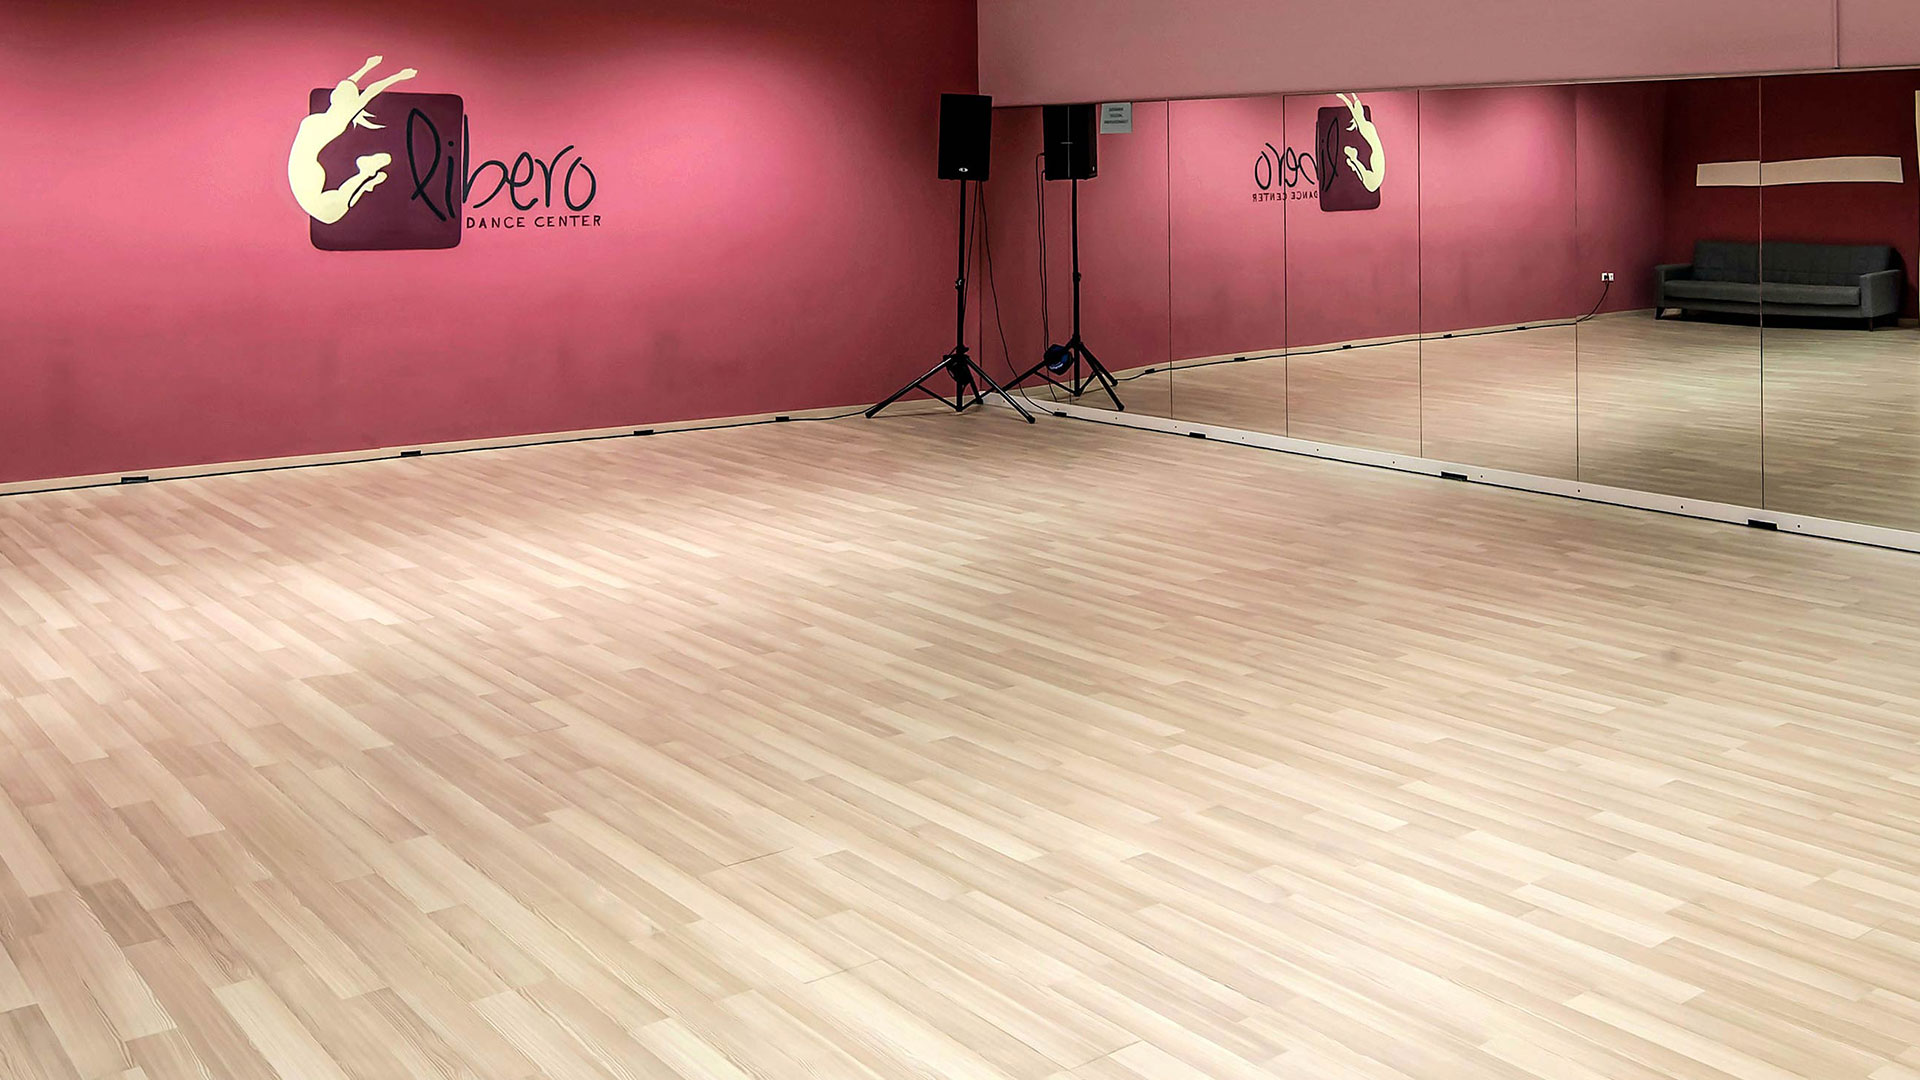 Libero Dance Center